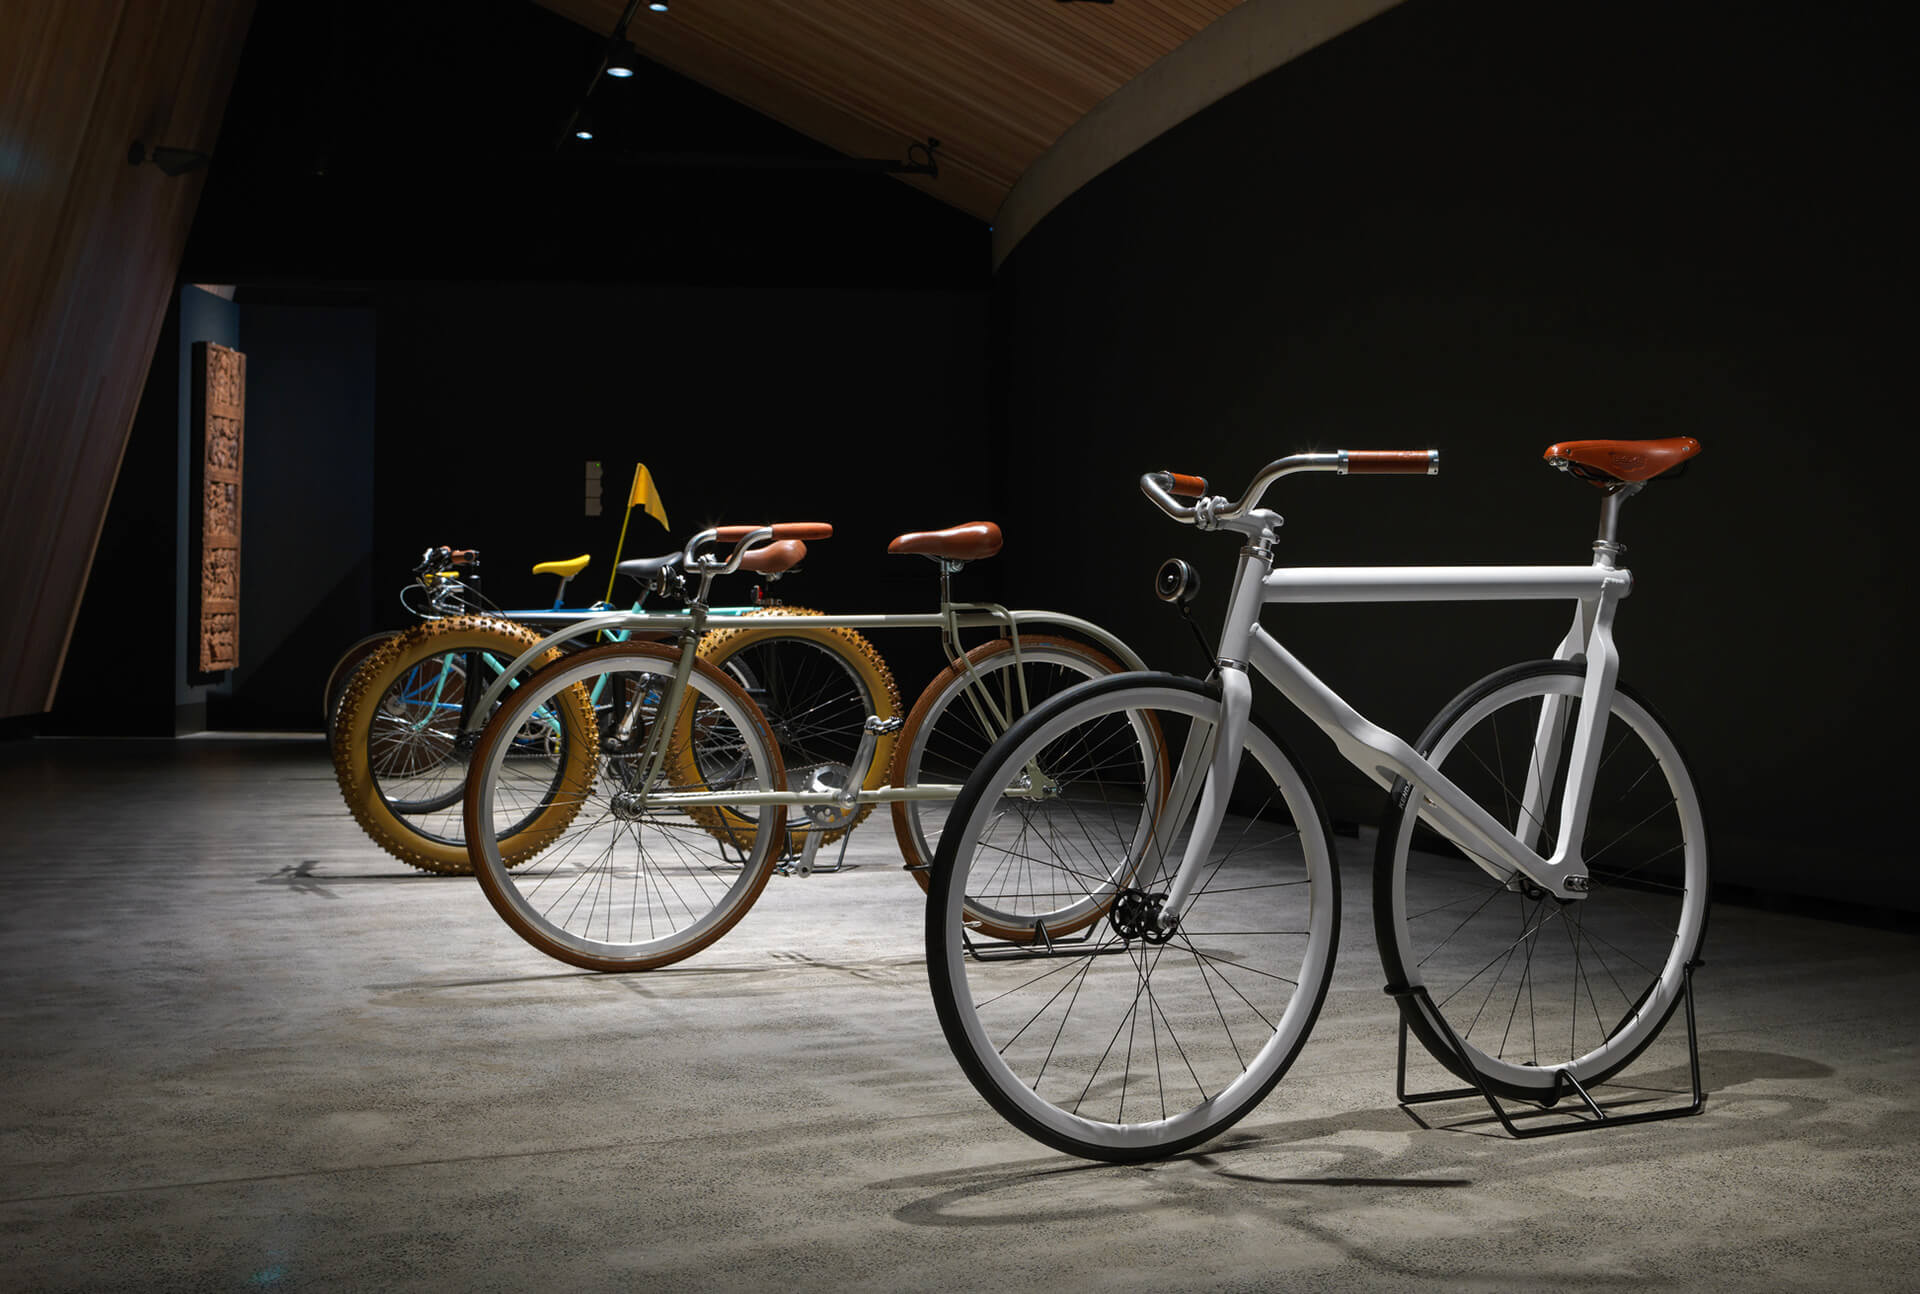 Unusual bicycle designs at the Museum of Old and New Art | Velocipedia| Gianluca Gimini | STIRworld